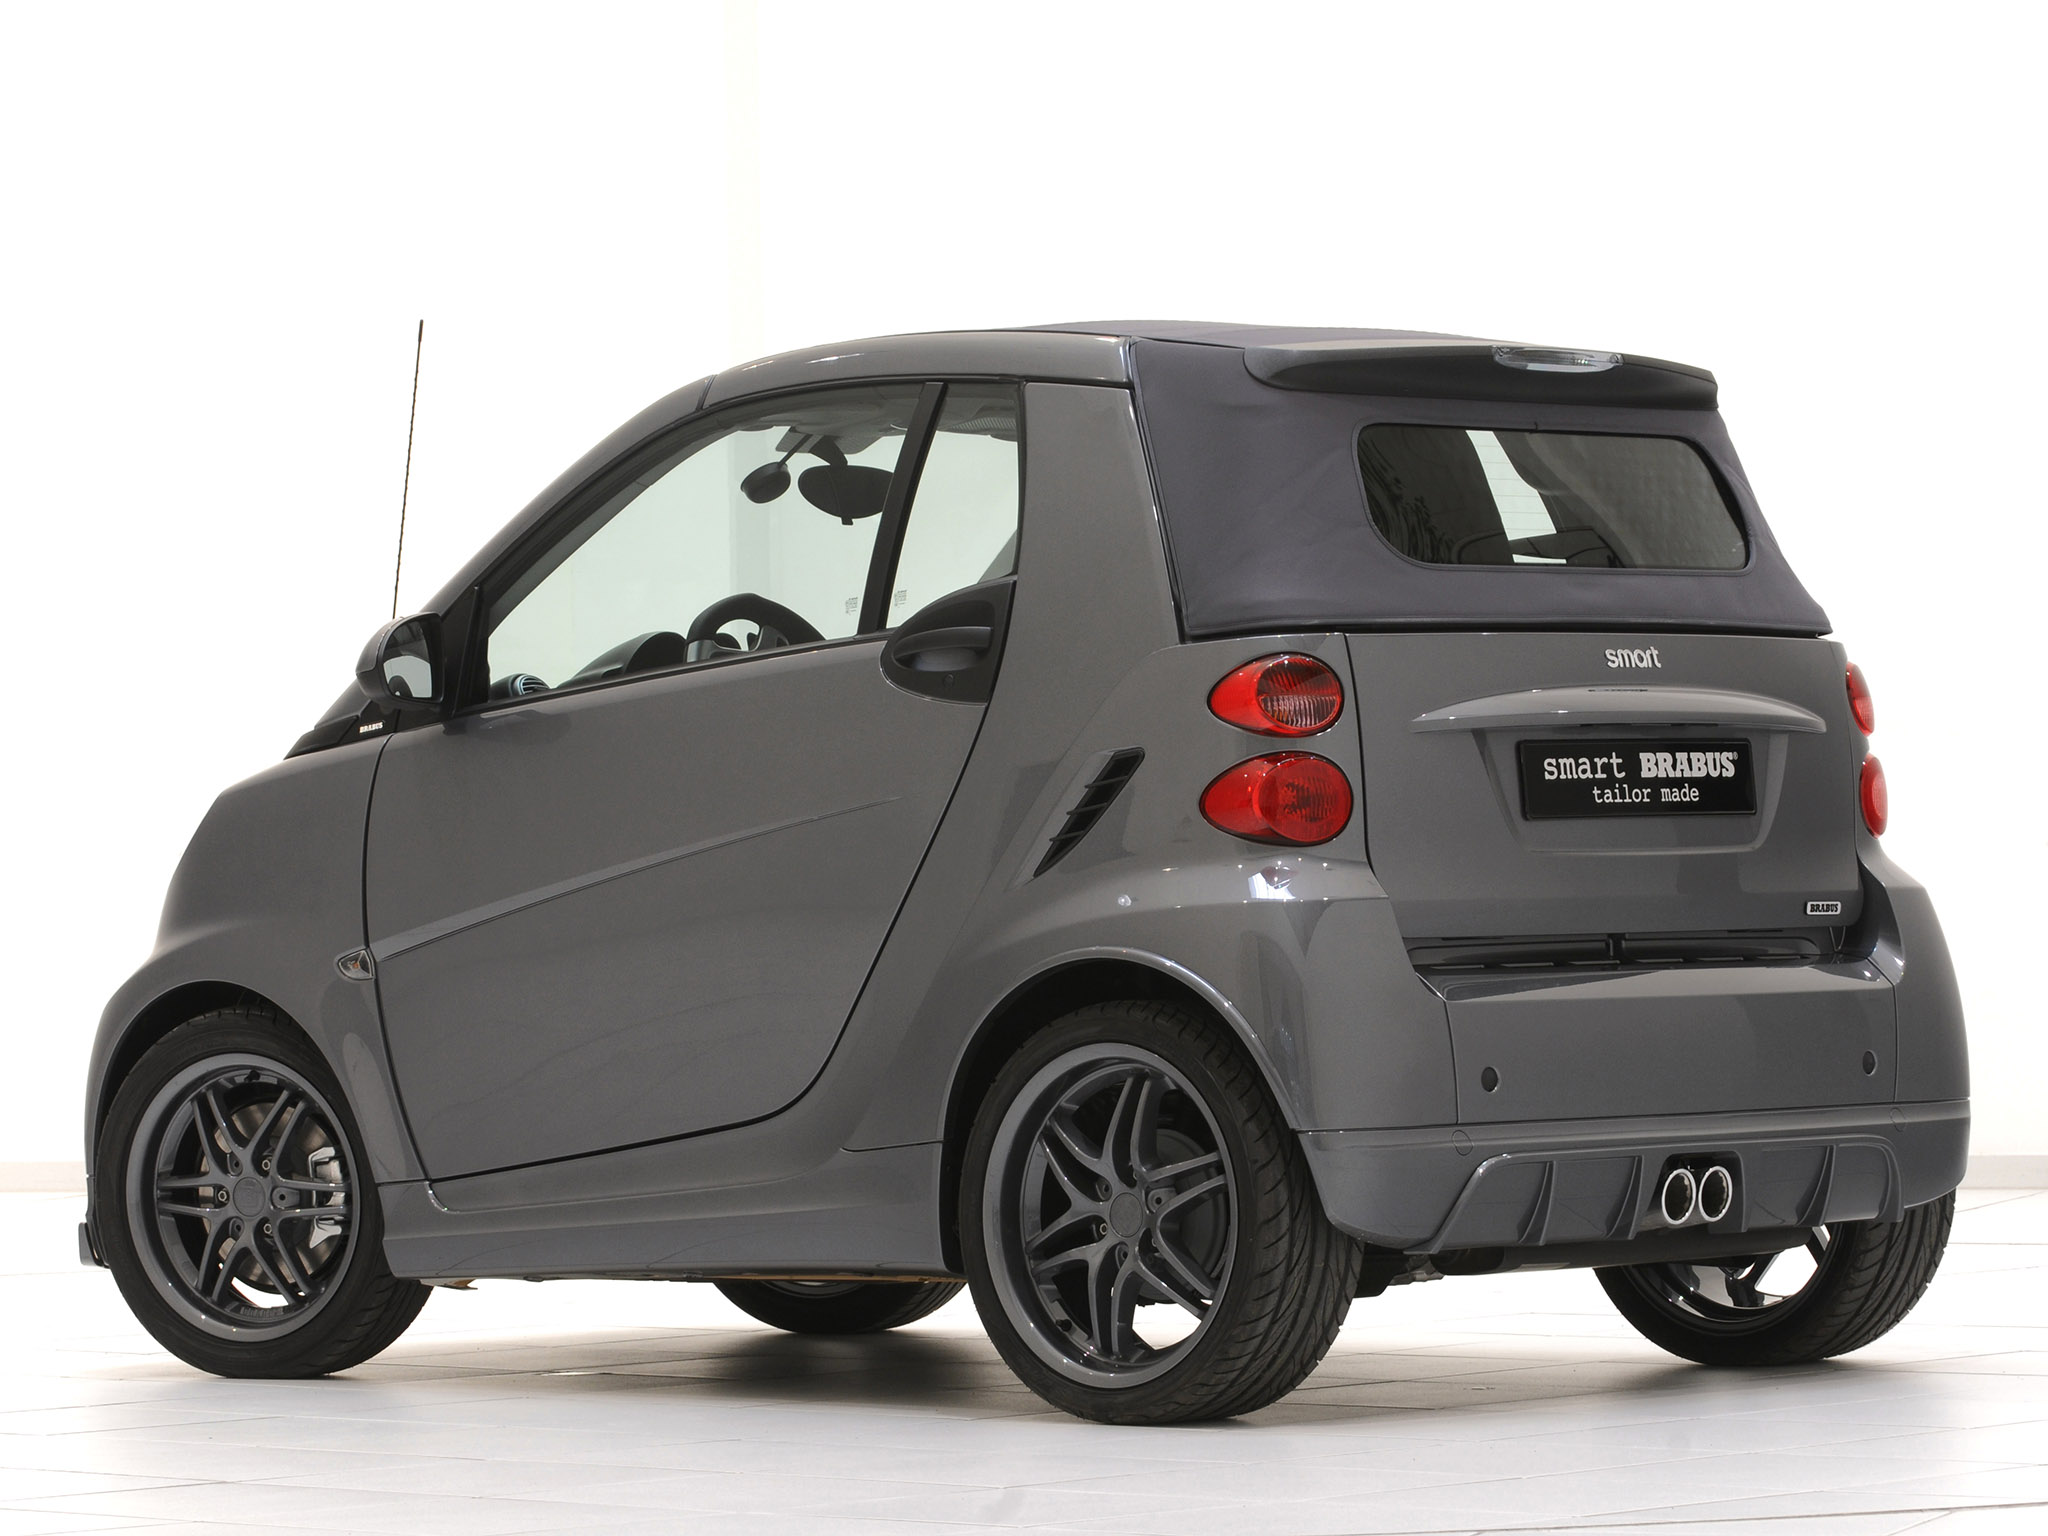 brabus smart fortwo tailor made grey 2010 photo 02 car in pictures. Black Bedroom Furniture Sets. Home Design Ideas